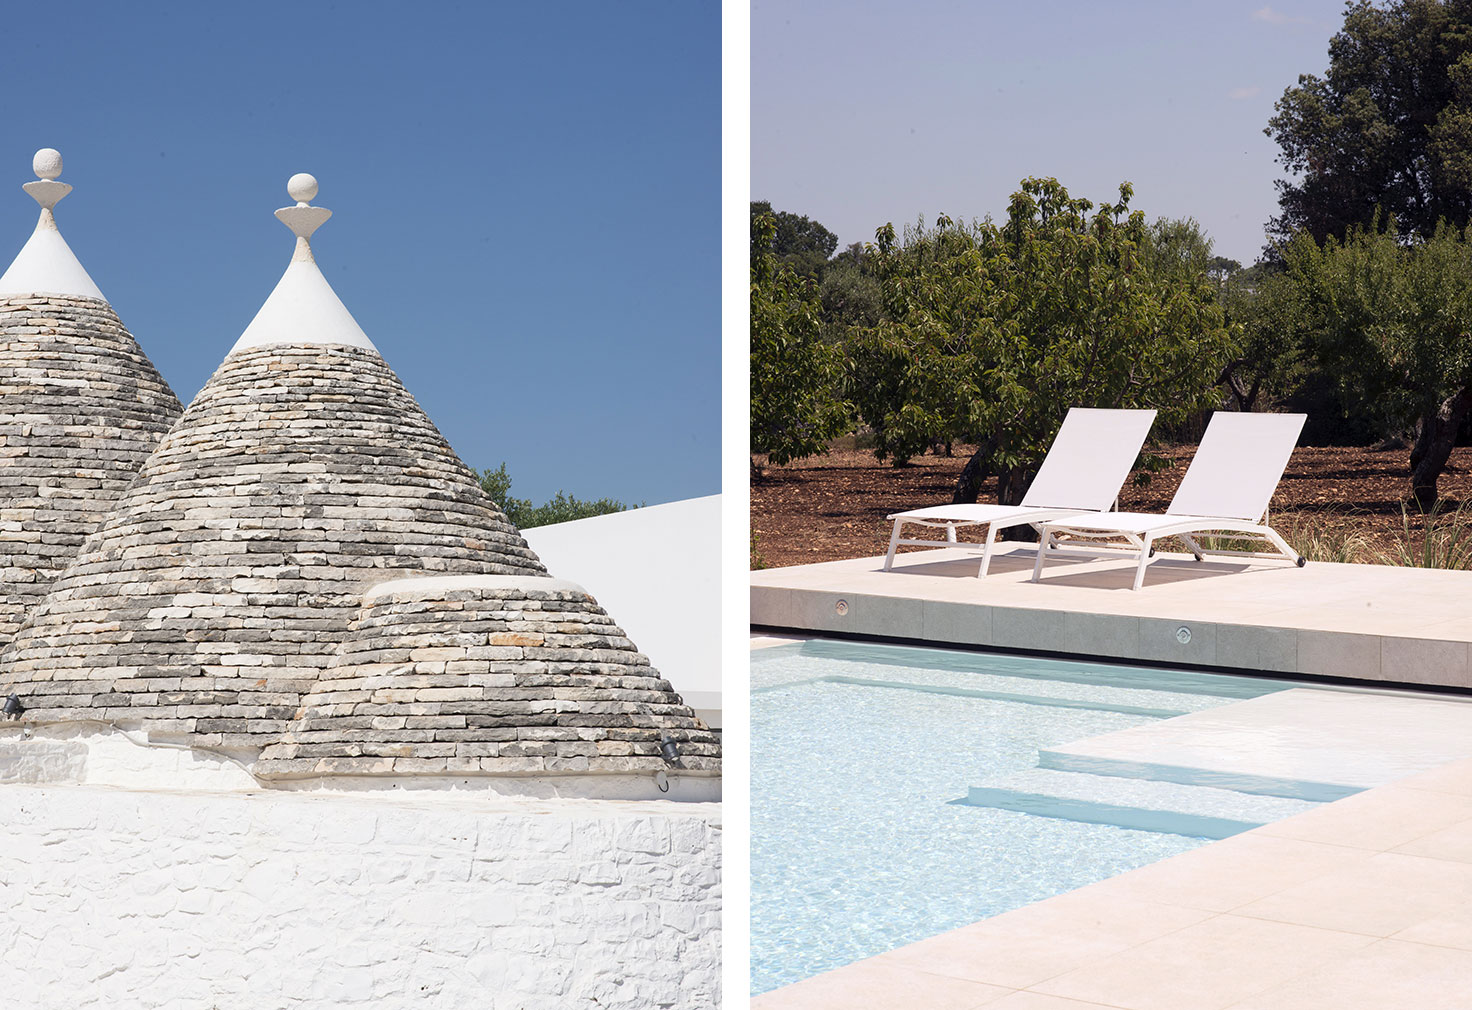 The house's conical roof has been restored and juxtaposed with modern interventions, including new white-washed volumes and a sleek stepped pool